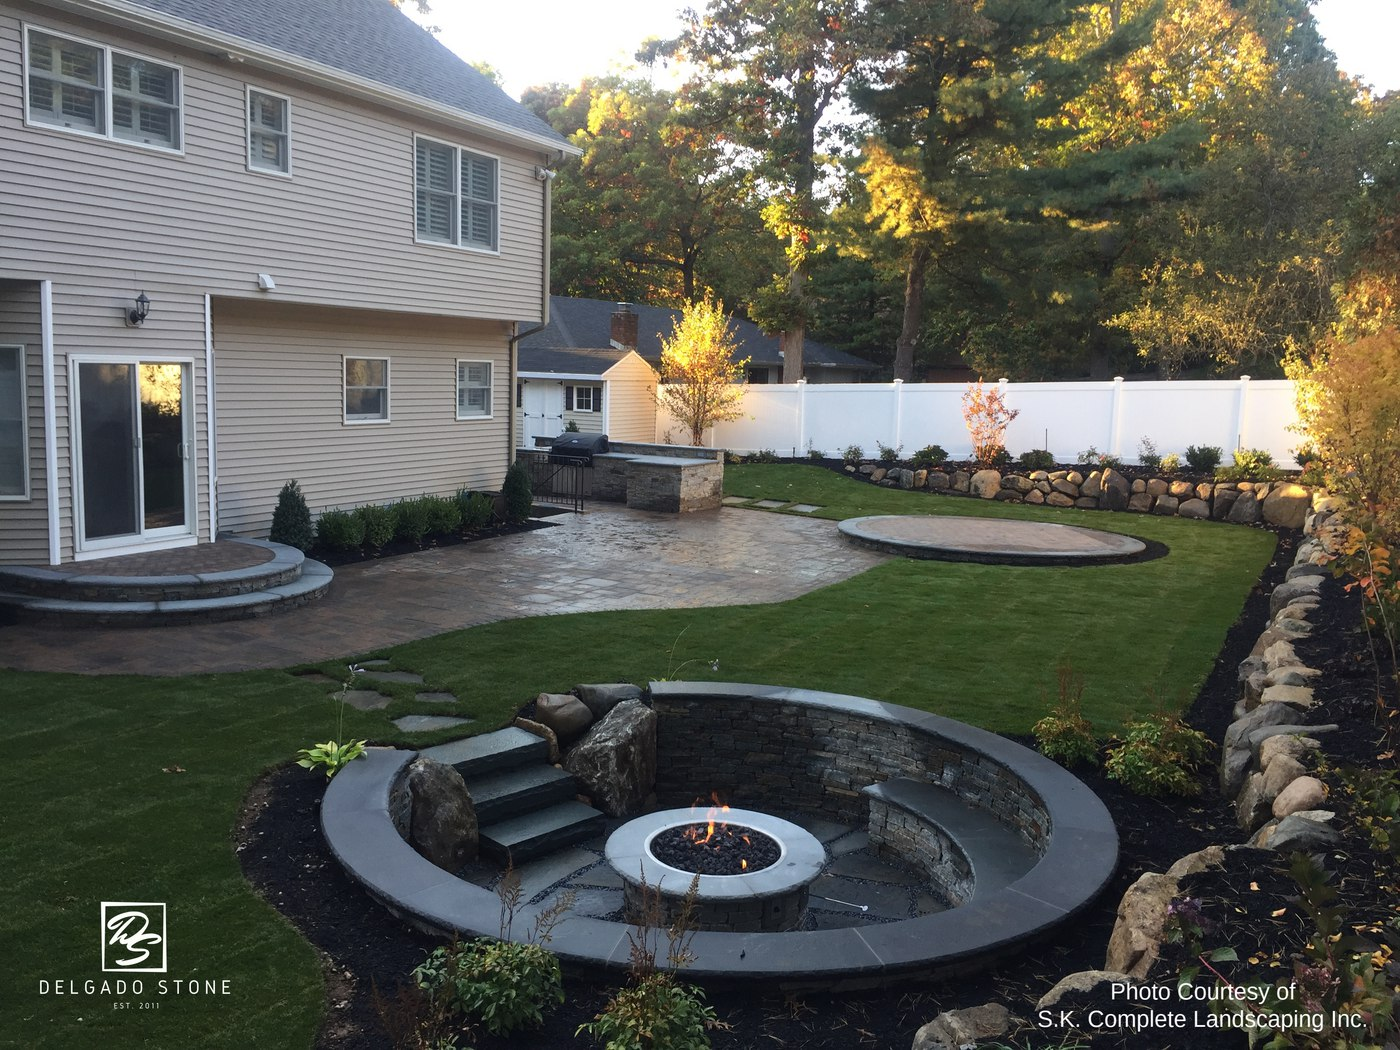 Spruce Mountain Ledge fire pit, risers and outdoor kitchen